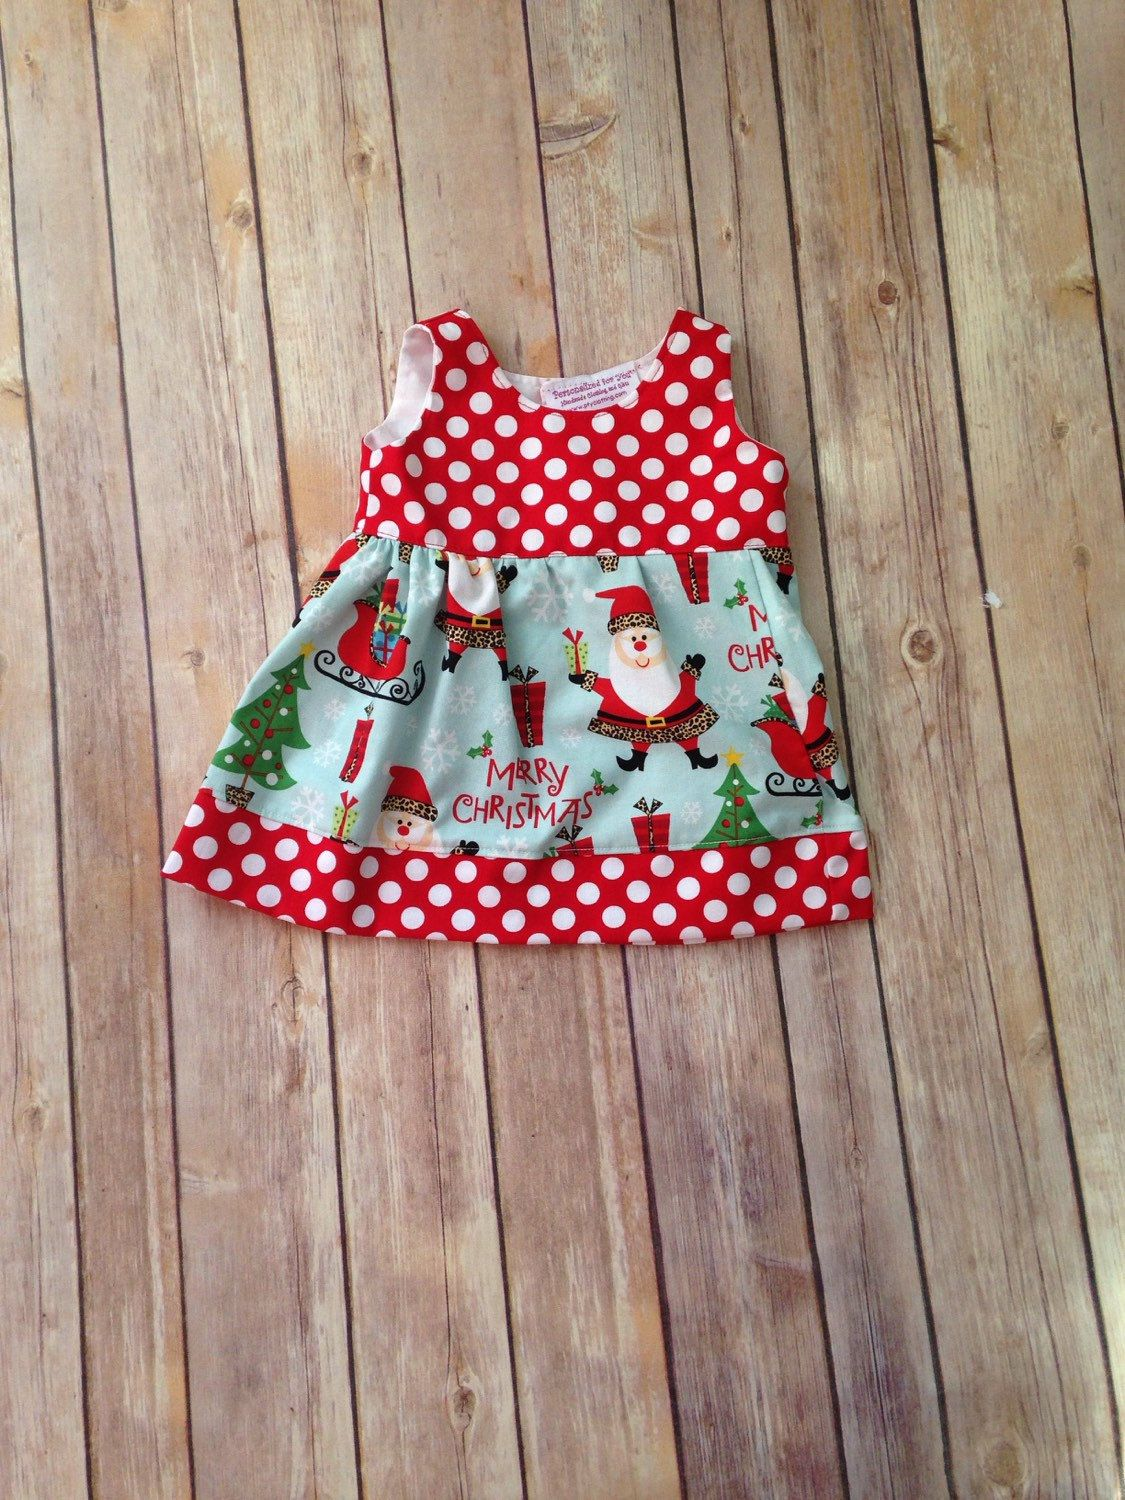 Christmas dress boutiques - Clearance Christmas Trees Boutique Girls Jumper Size 6mos Toddler And Infant Girls Dress Girls Christmas Dress